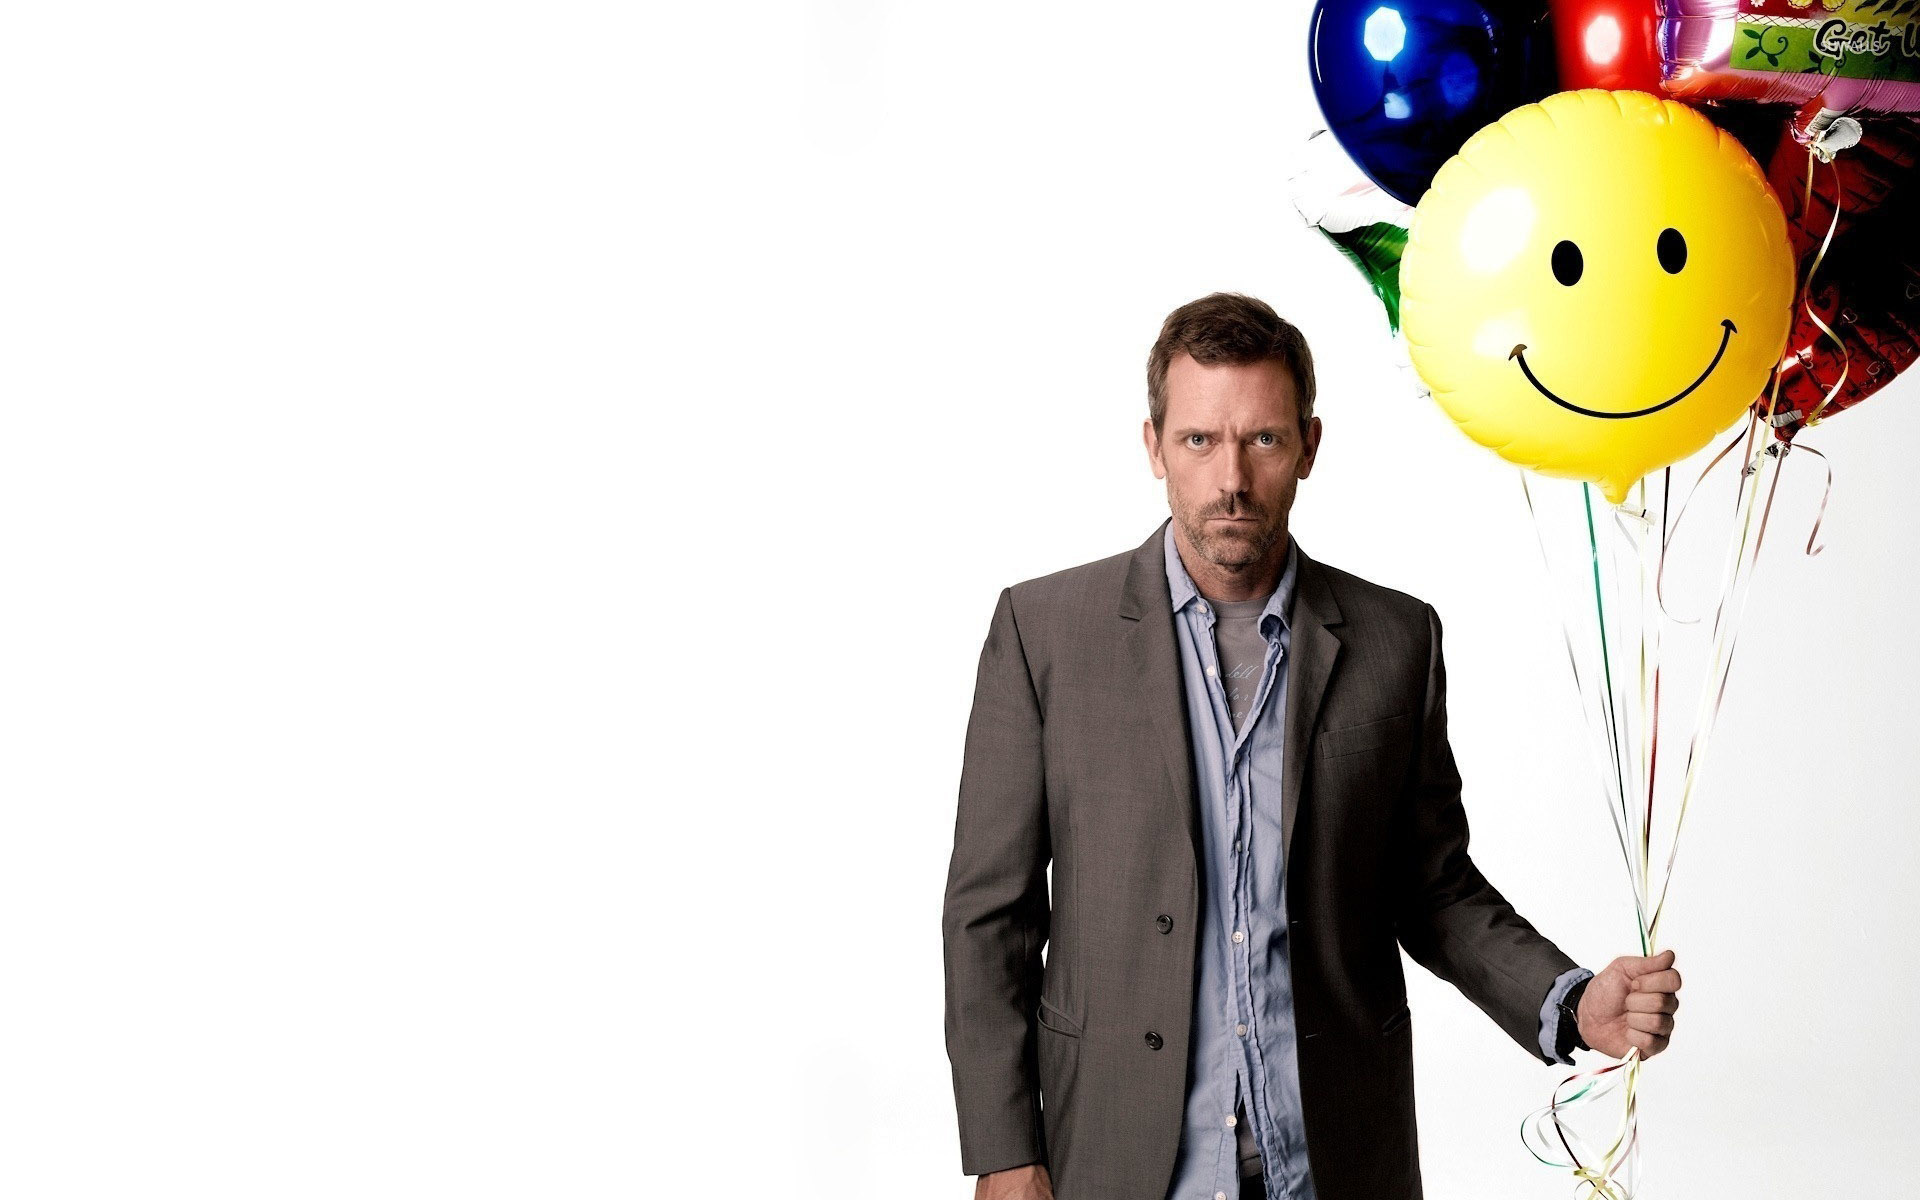 Hugh Laurie Quotes Wallpaper Dr Gregory House With Colorful Balloons House M D